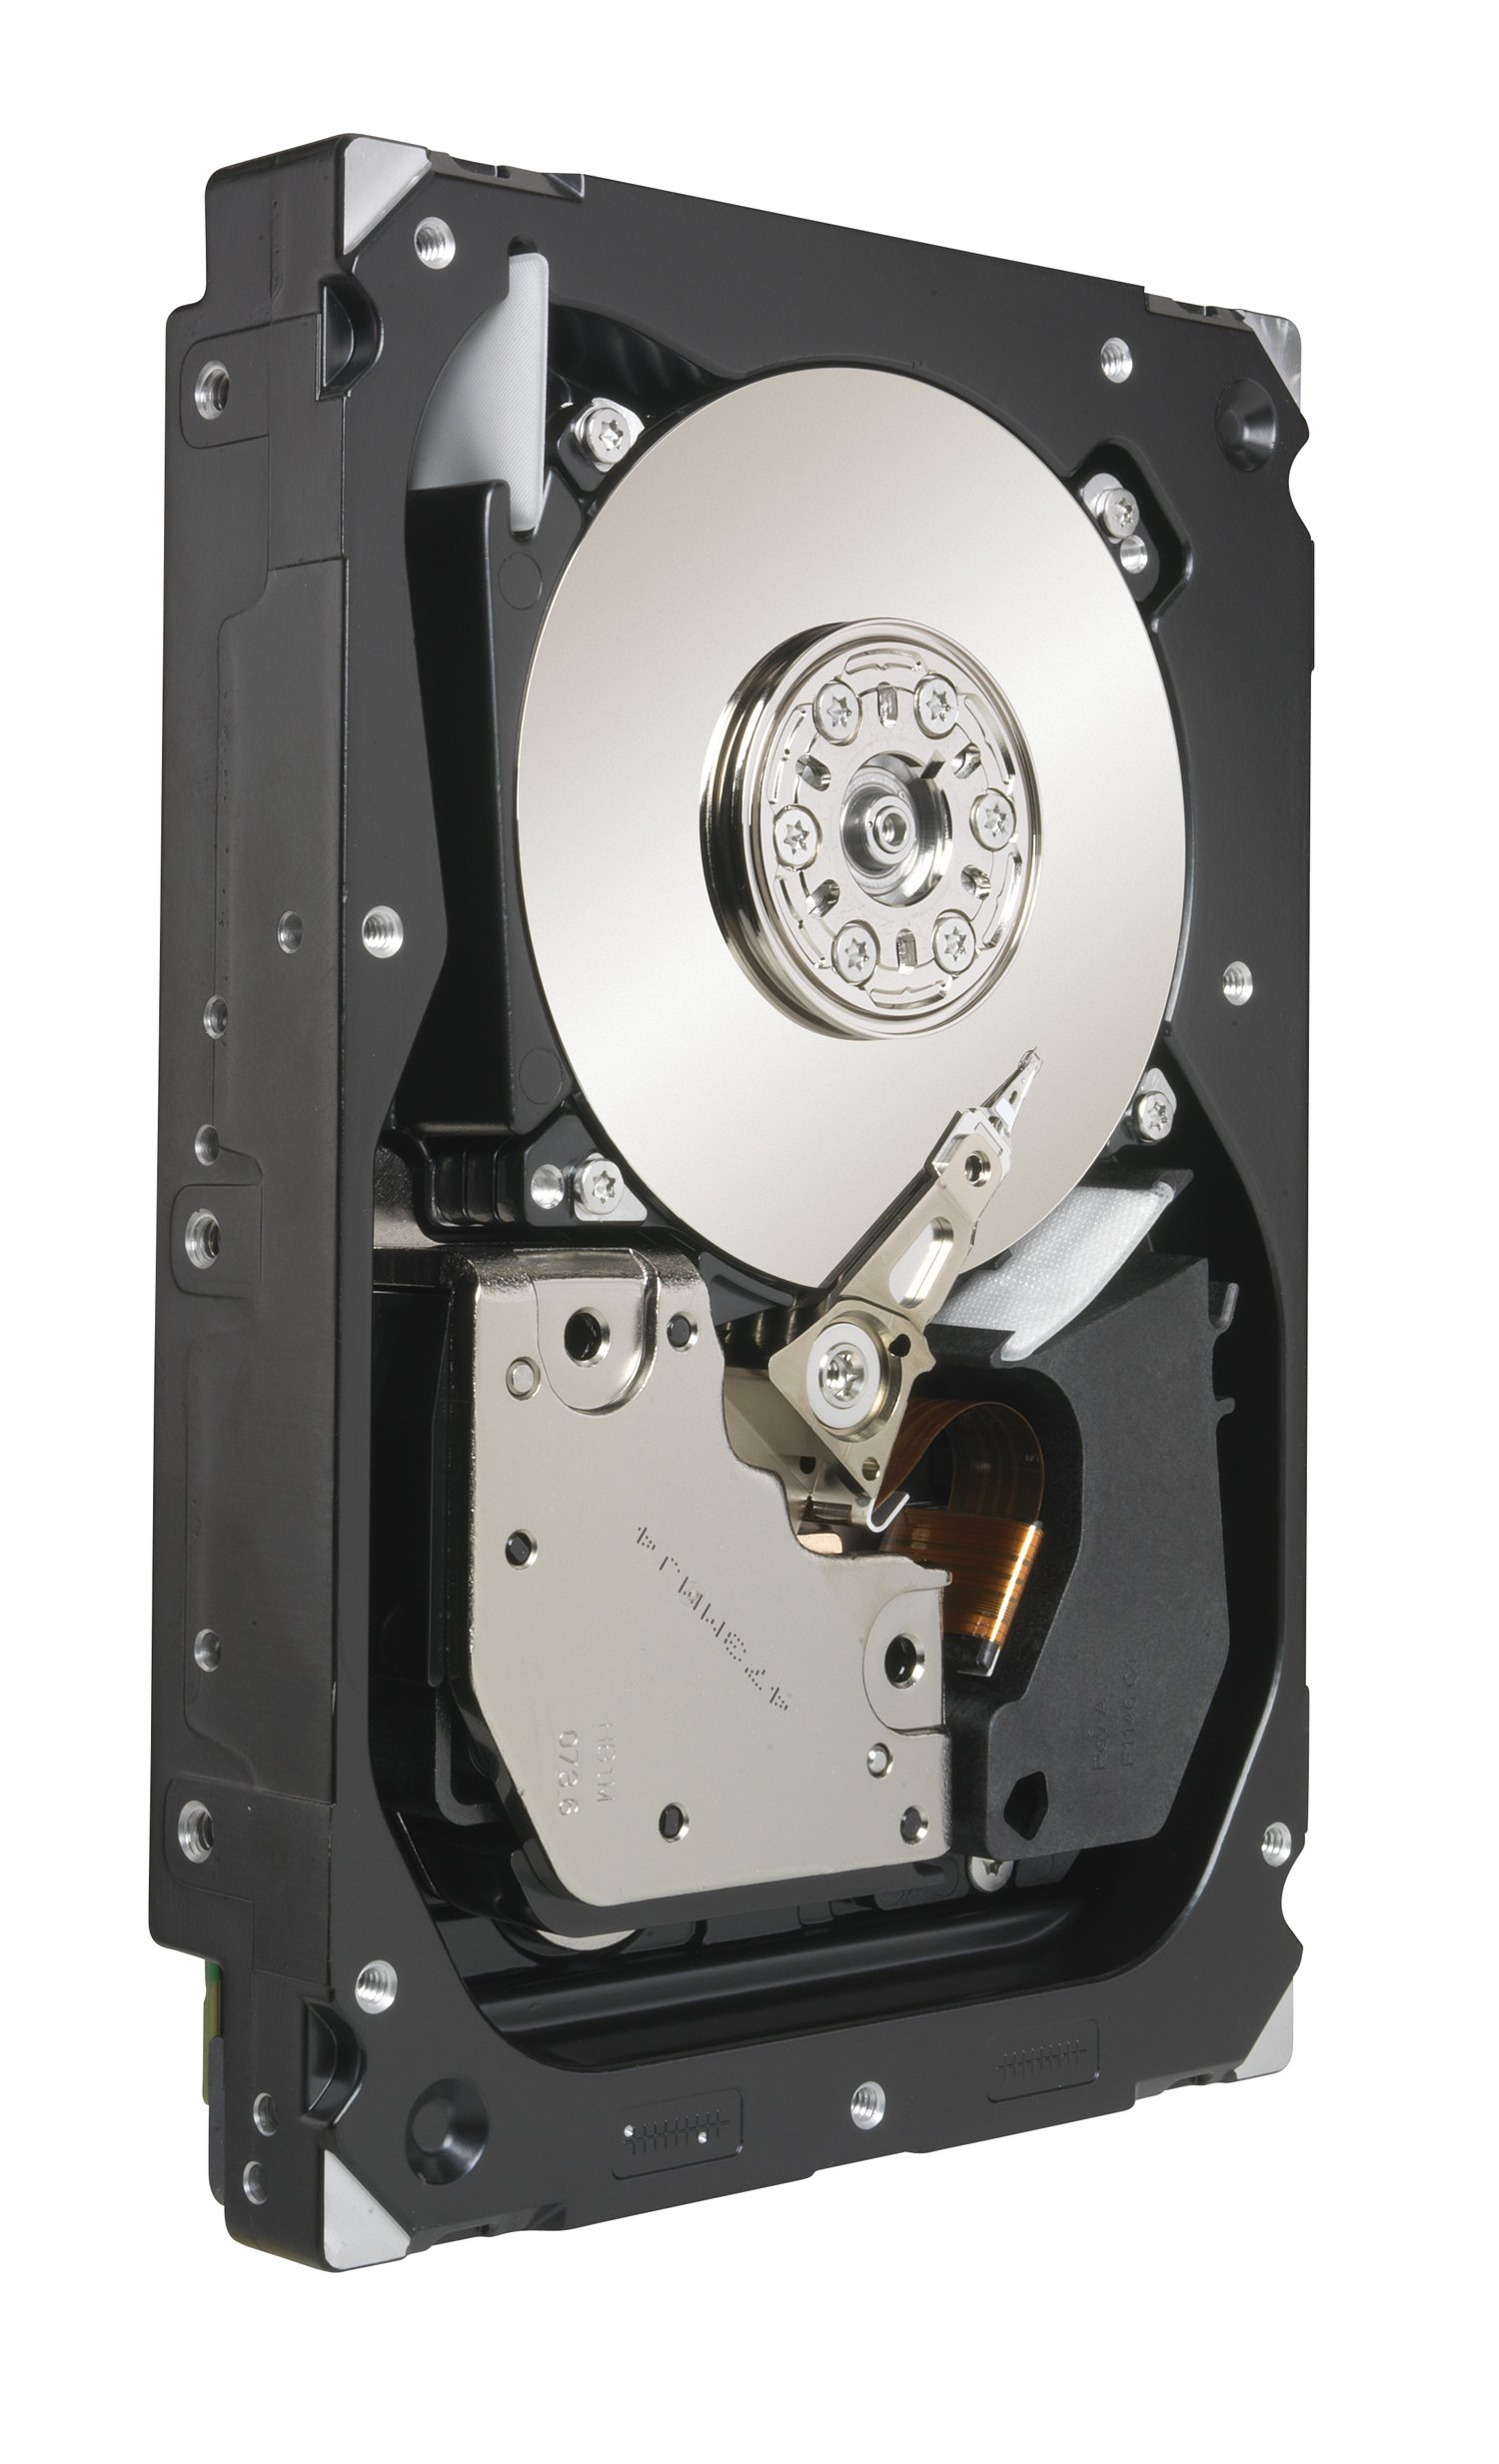 Seagate Cheetah 15K.7 600 GB 15000RPM SAS 6 Gb/s 16MB Cache 3.5 Inch Internal Bare Drive ST3600057SS by Seagate